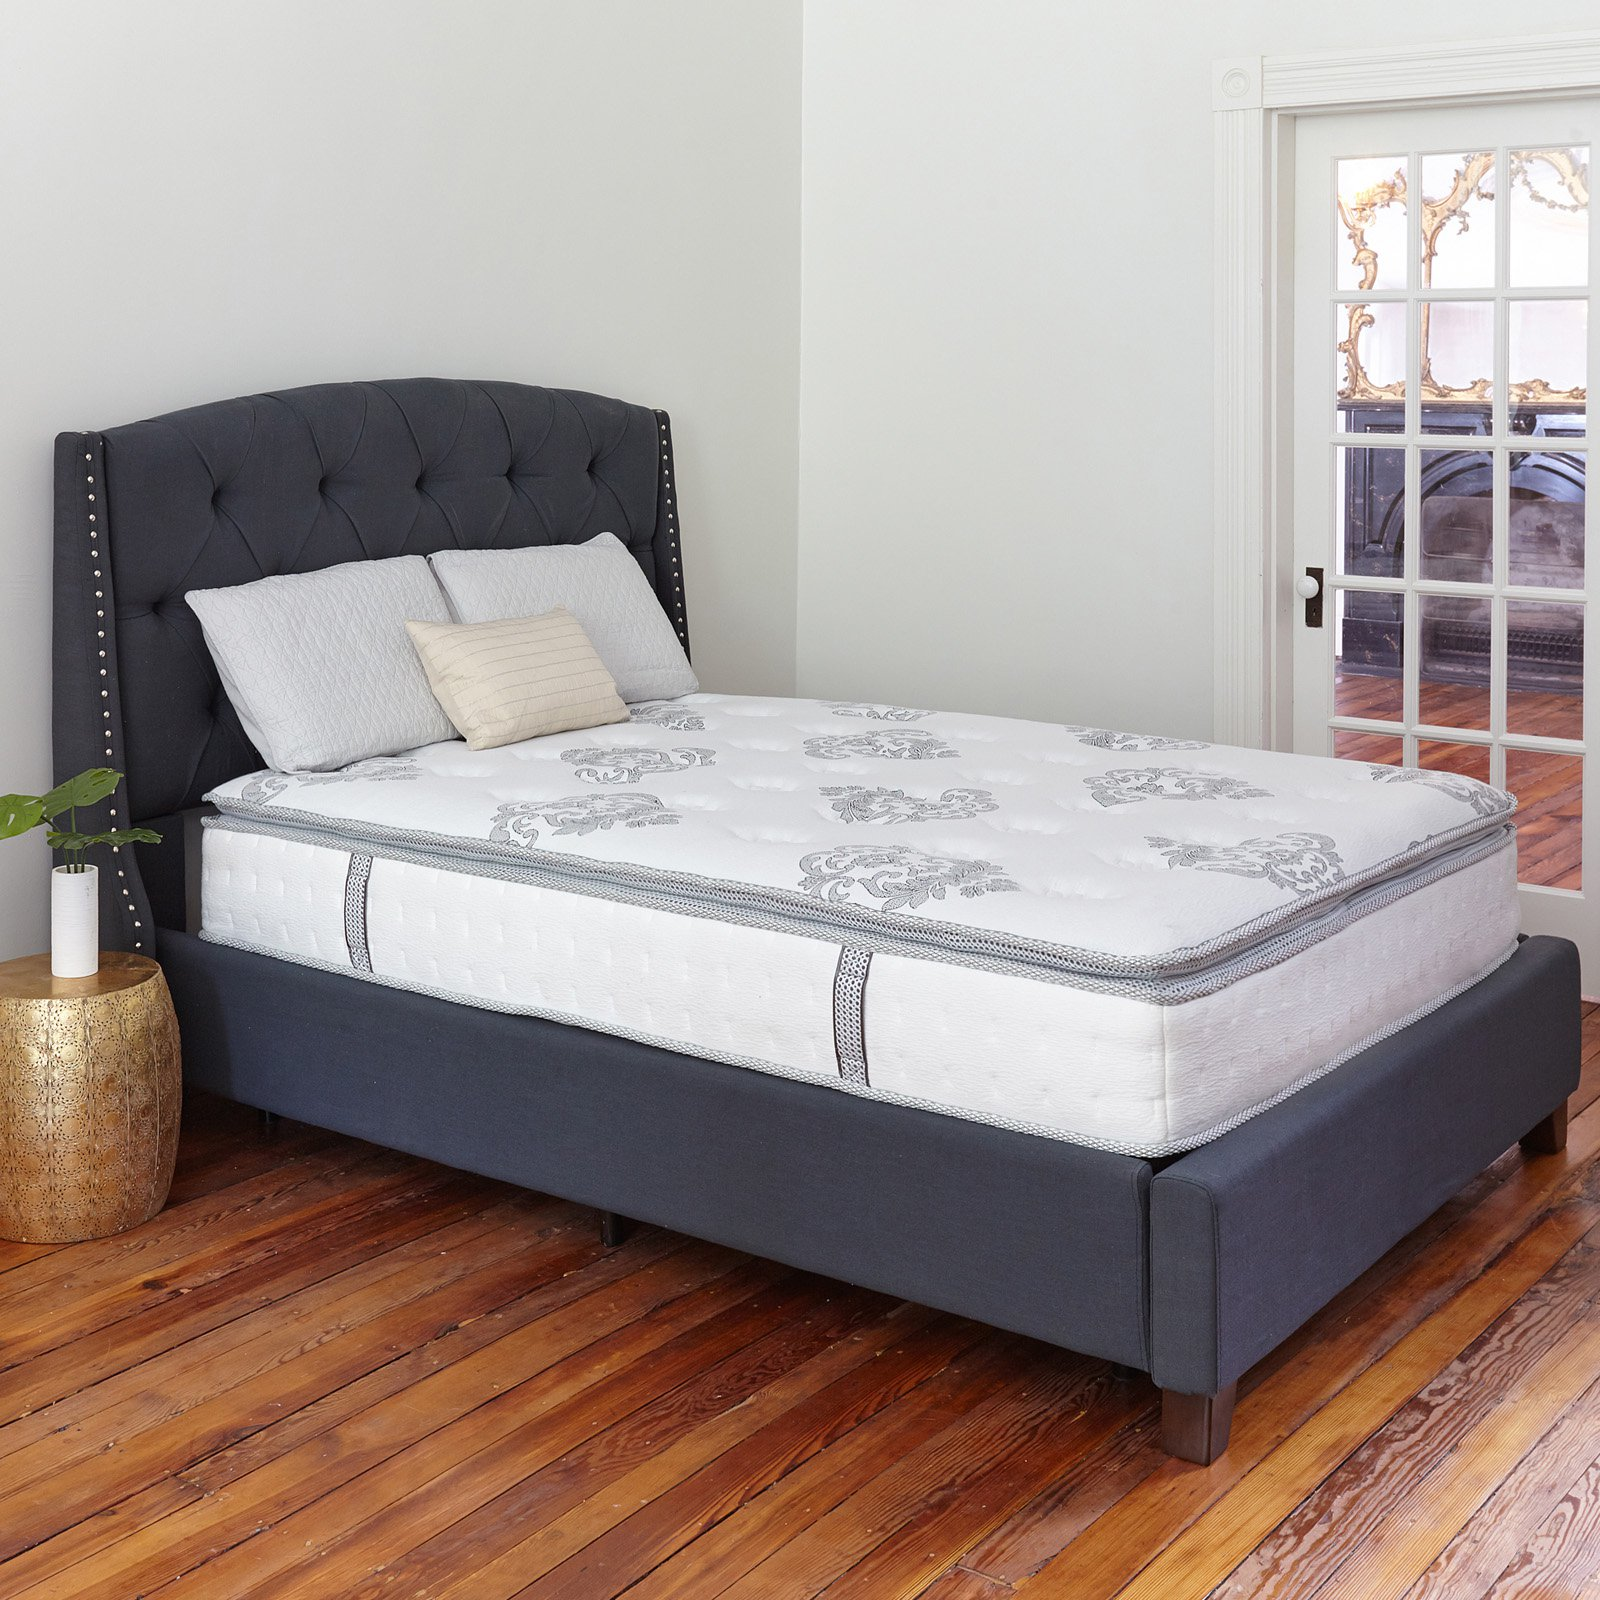 Classic Brands Mercer 12 in. Hybrid Cool Gel Memory Foam and Innerspring Mattress by Classic Brands